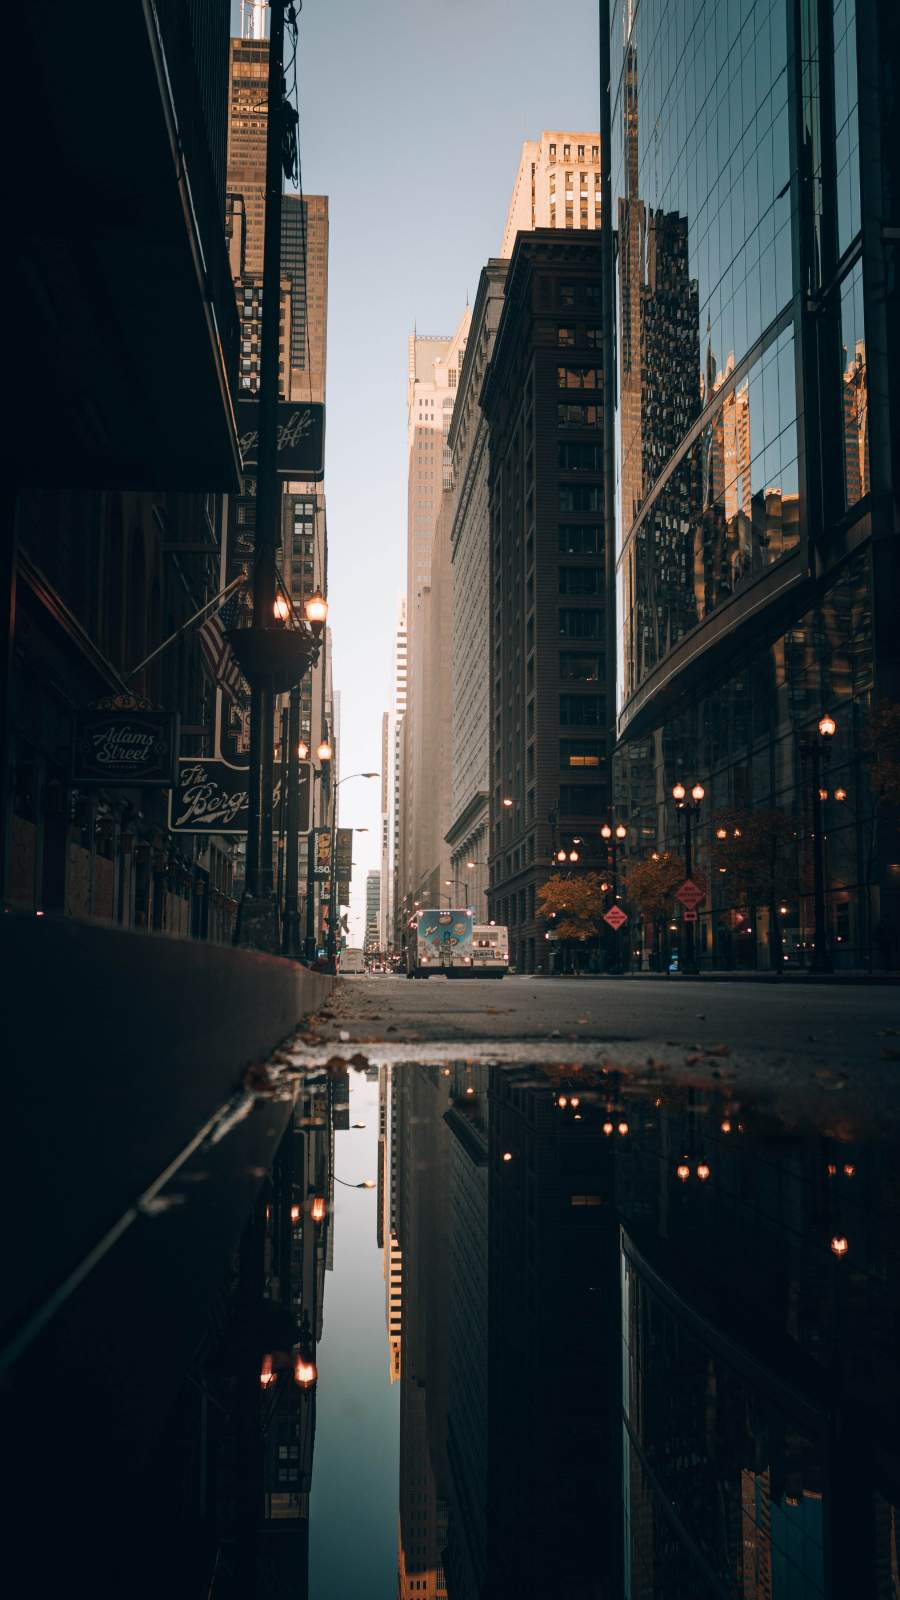 Street Water City Reflection